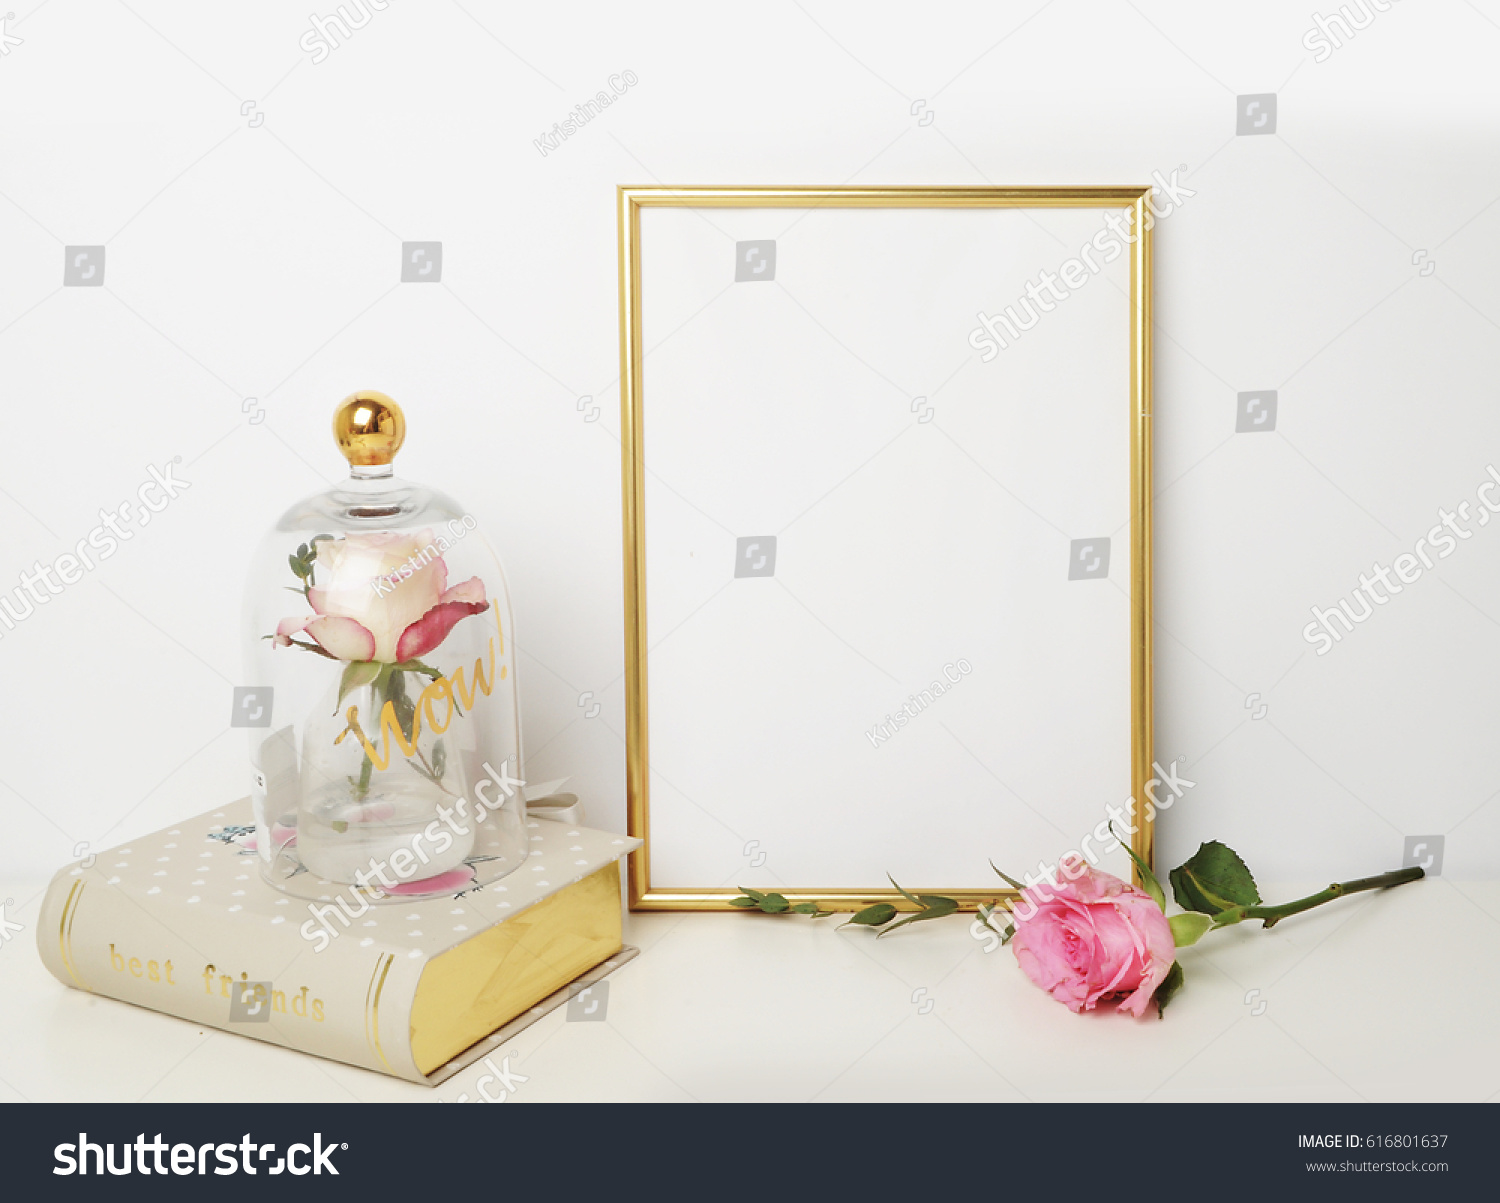 Gold Picture Frame Decorations Mock Your Stock Photo (Edit Now ...